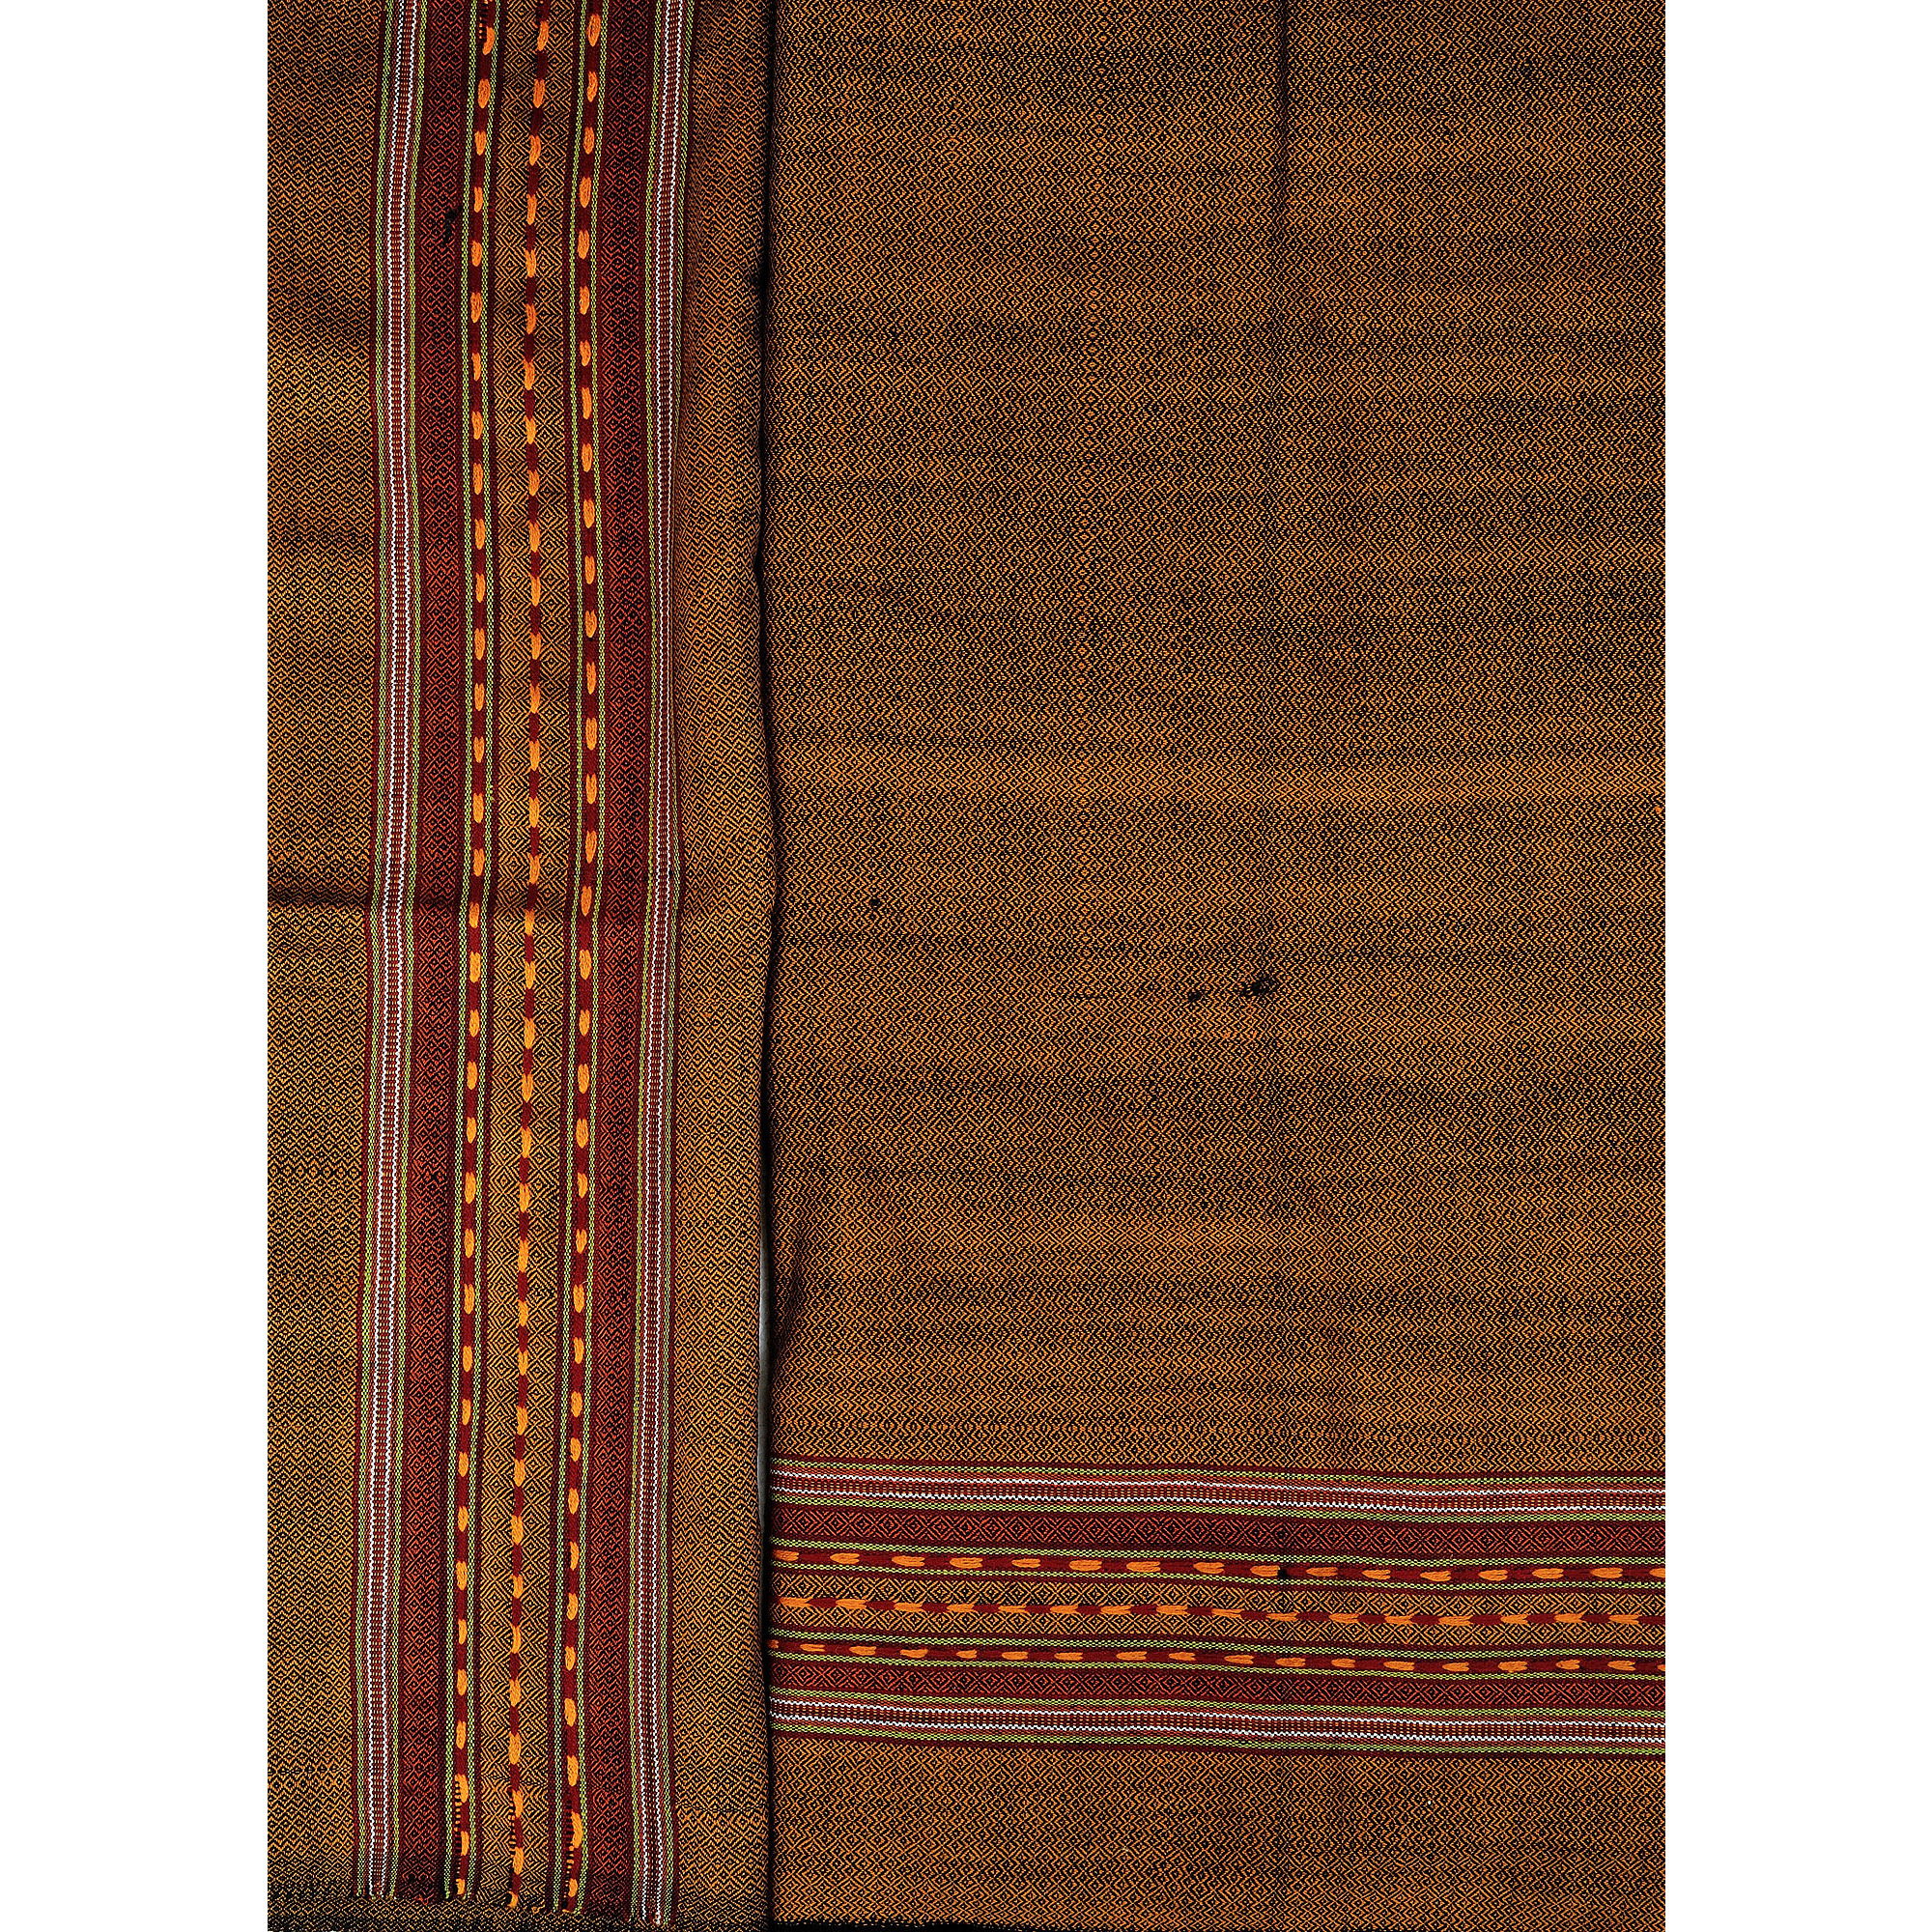 Salwar Kameez Fabric From Kullu with Kinnauri Hand-Woven Border